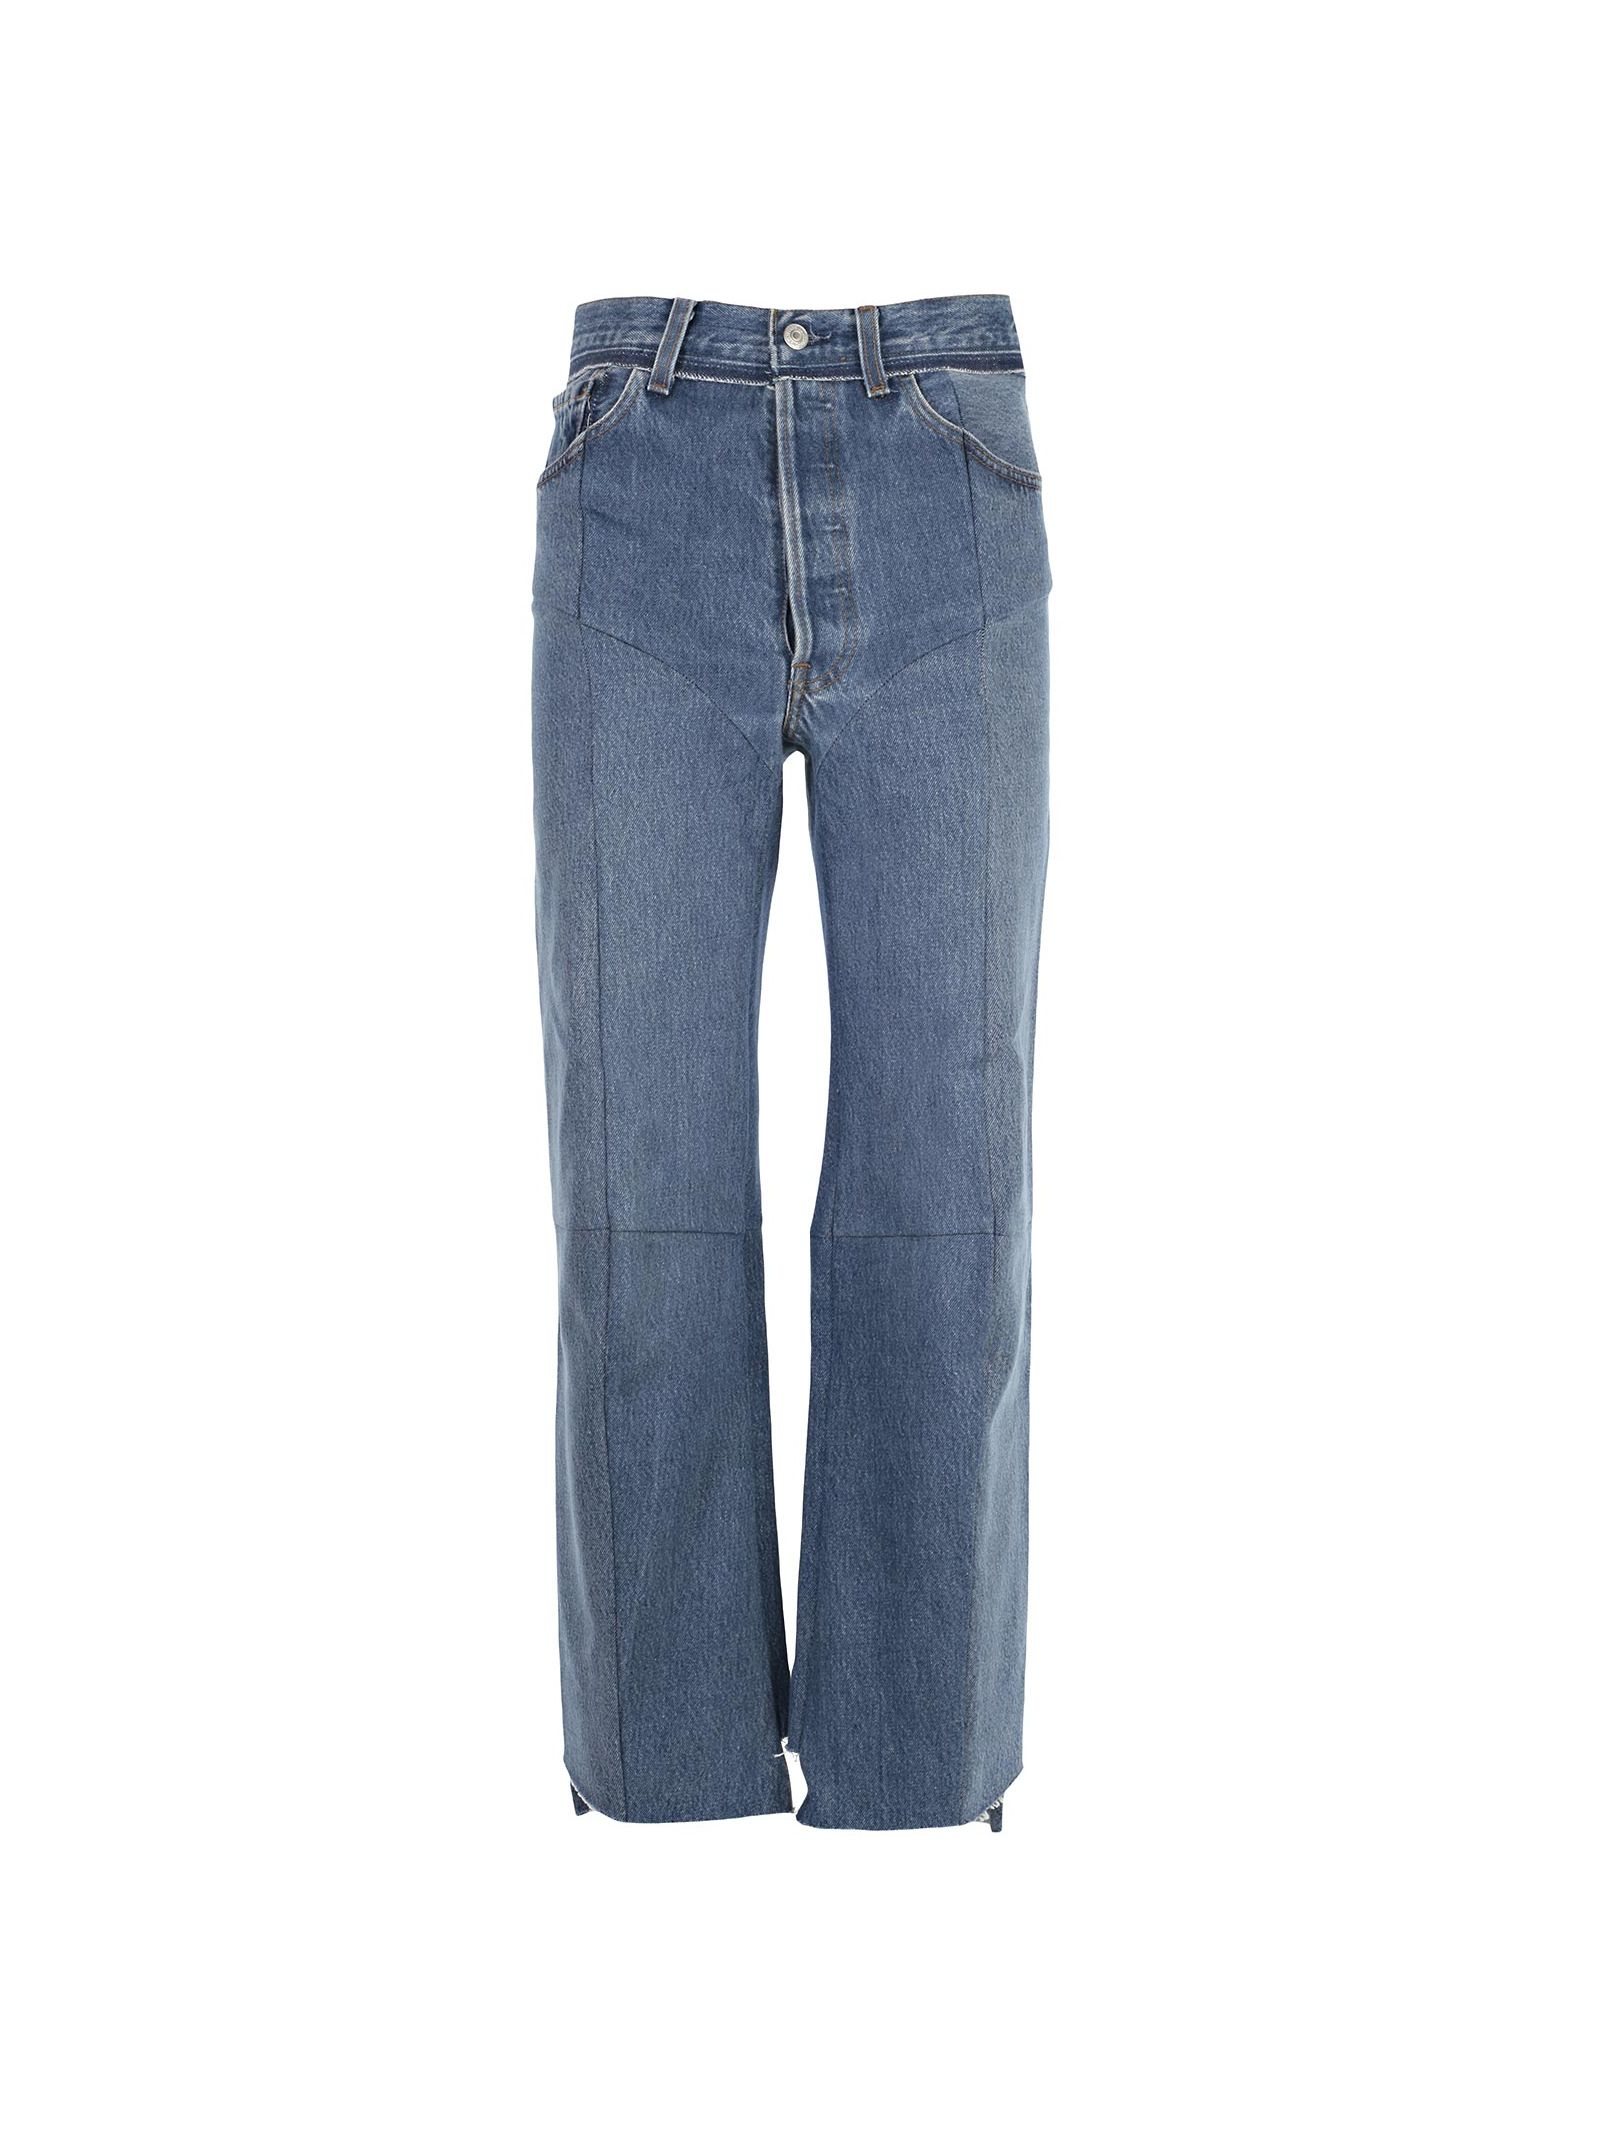 Jeans From Vetements: Blue Cotton Jeans